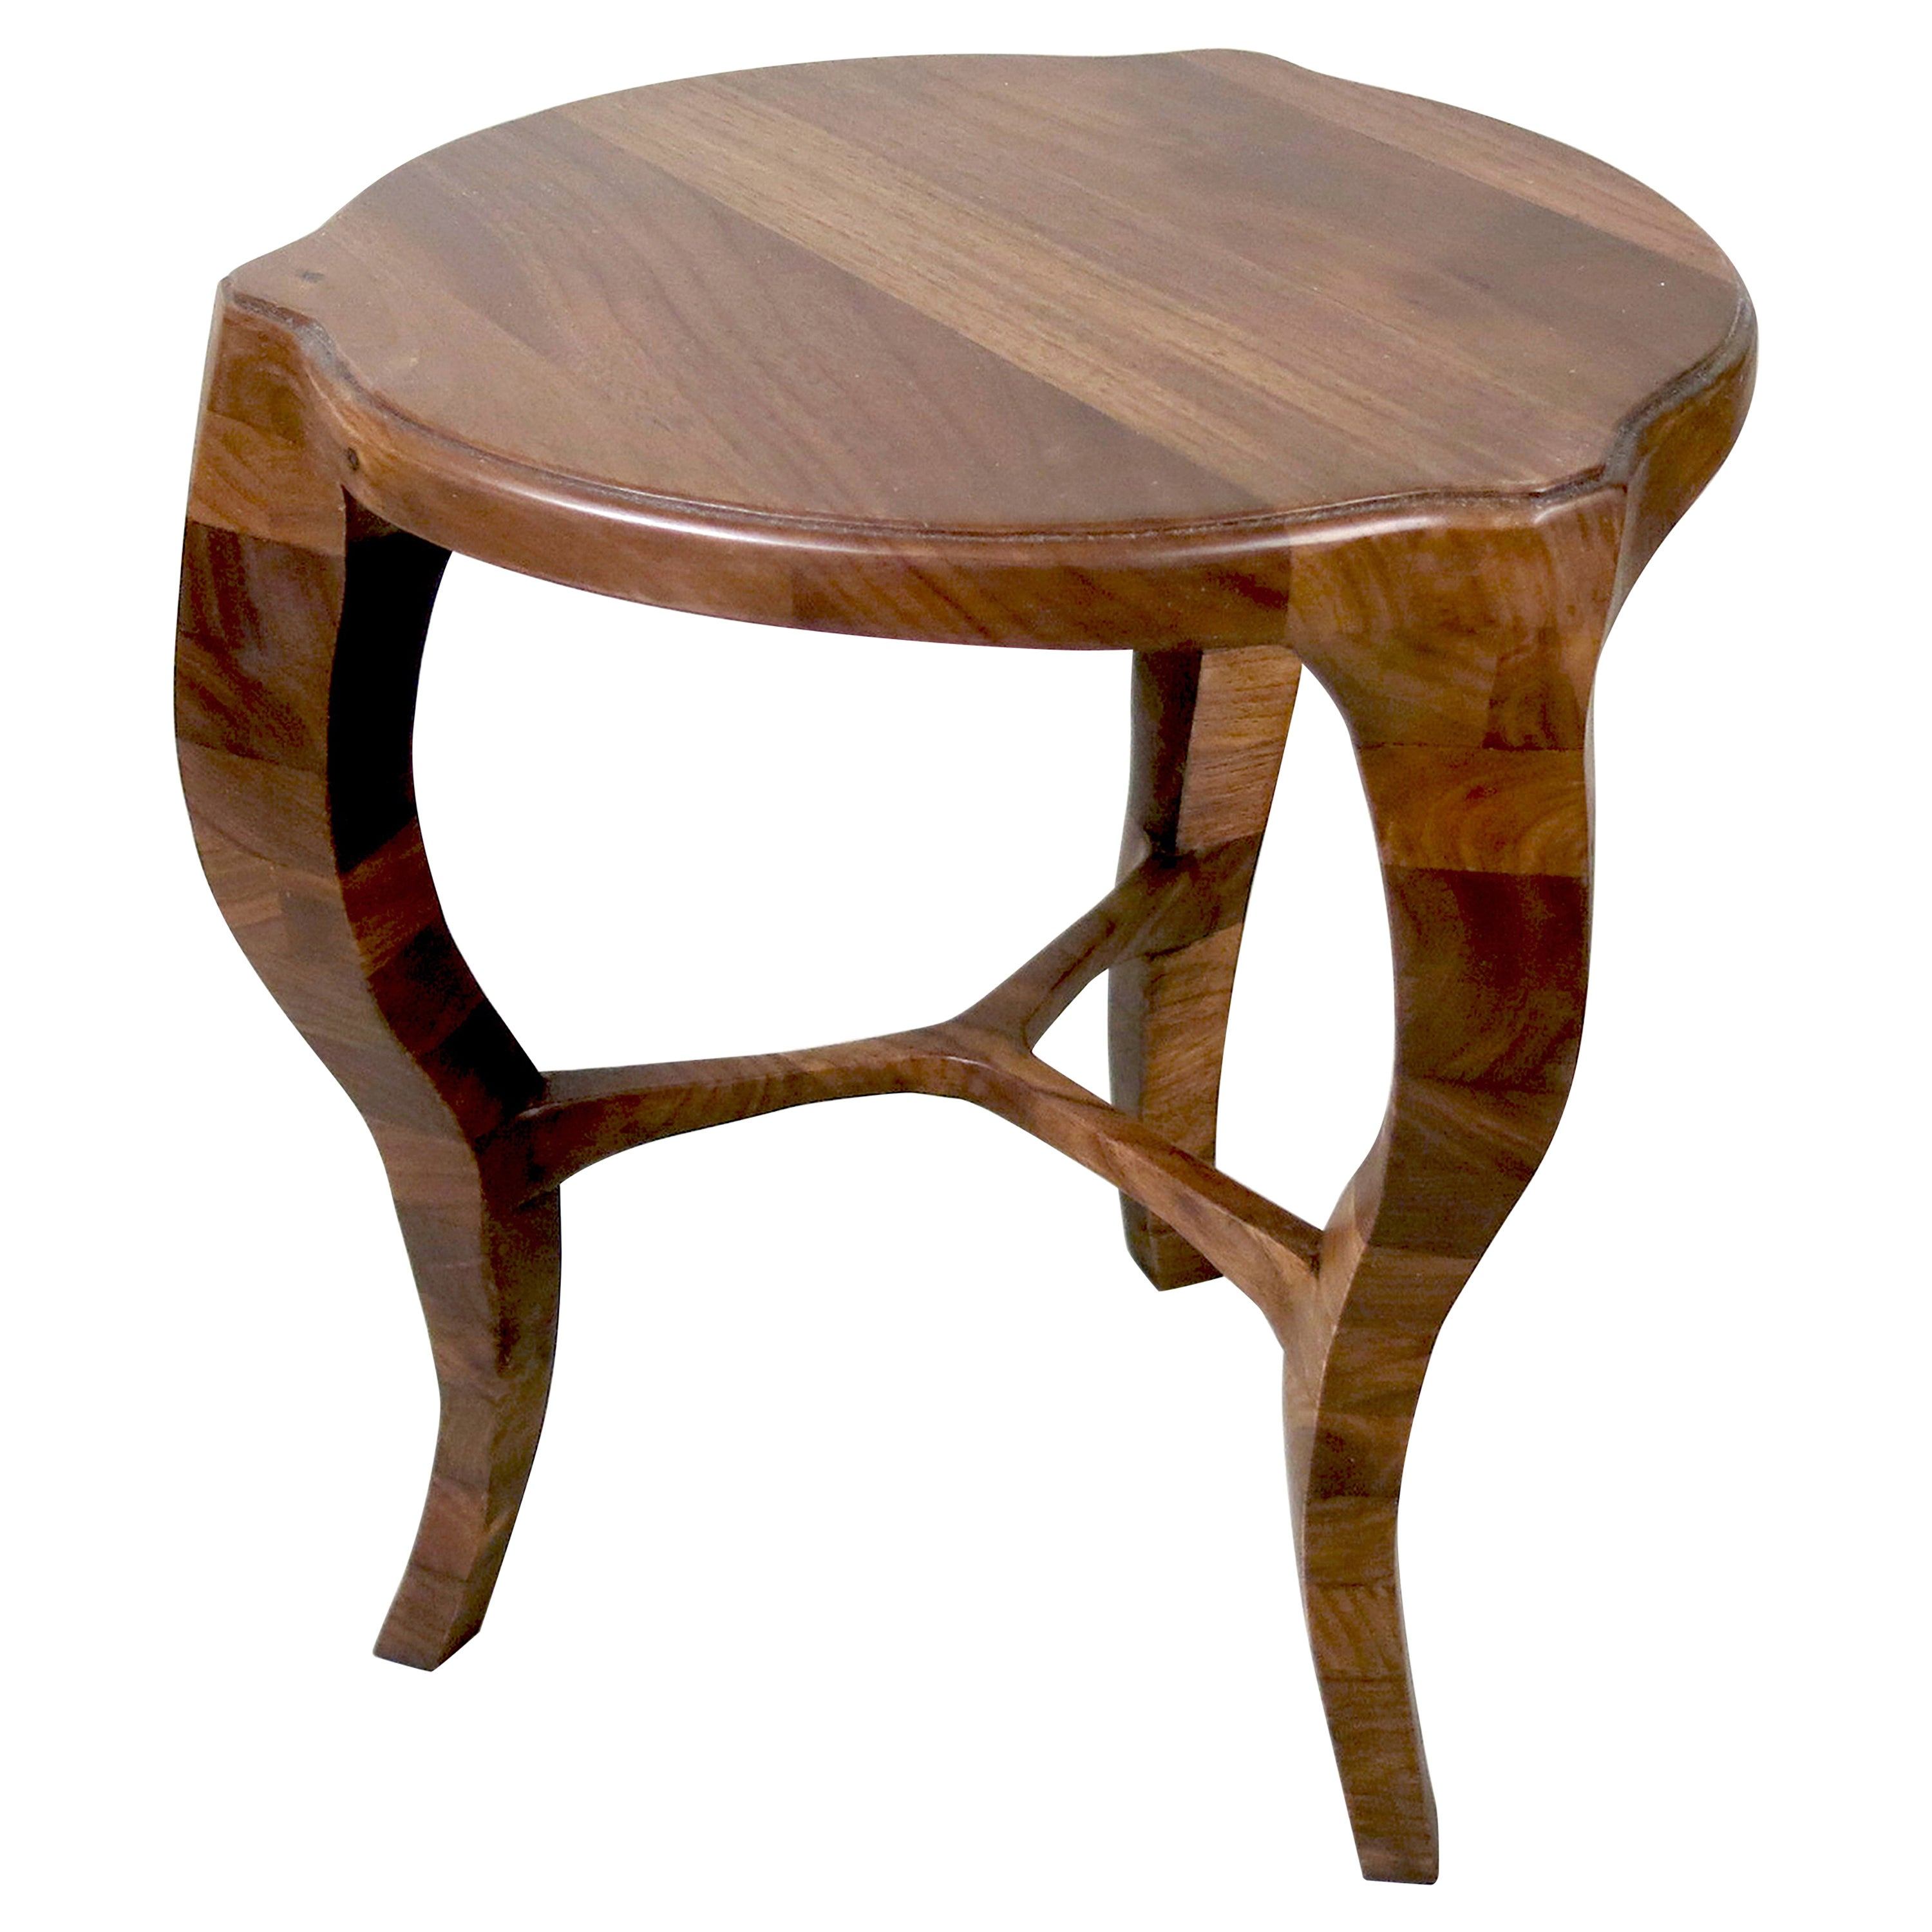 LXV Occasional Table, Handcrafted in Solid Wood with S-Curve Legs